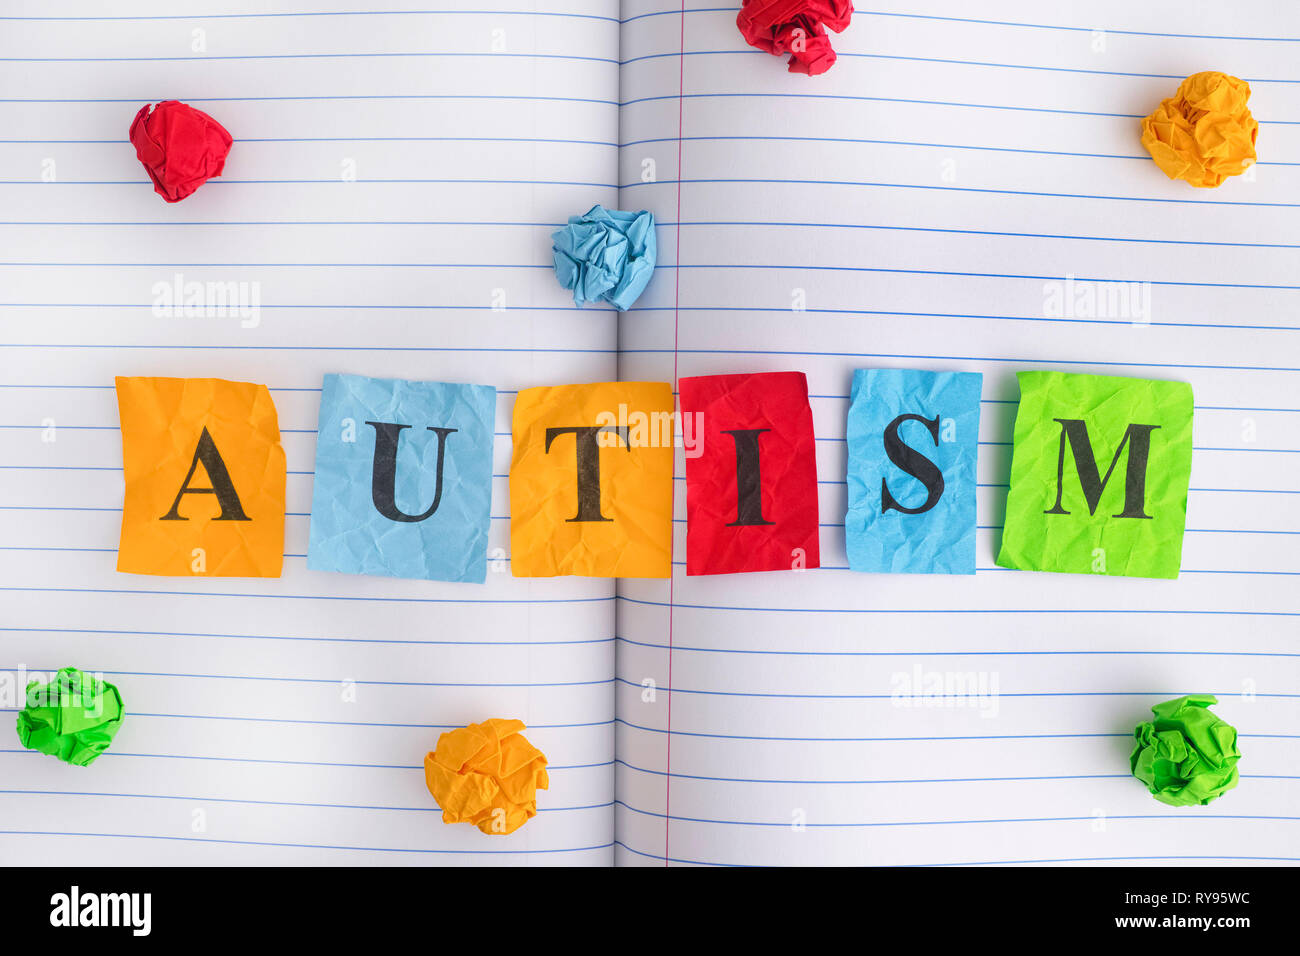 Autism. Word Autism on notebook sheet with some colorful crumpled paper balls around it. Close up. - Stock Image